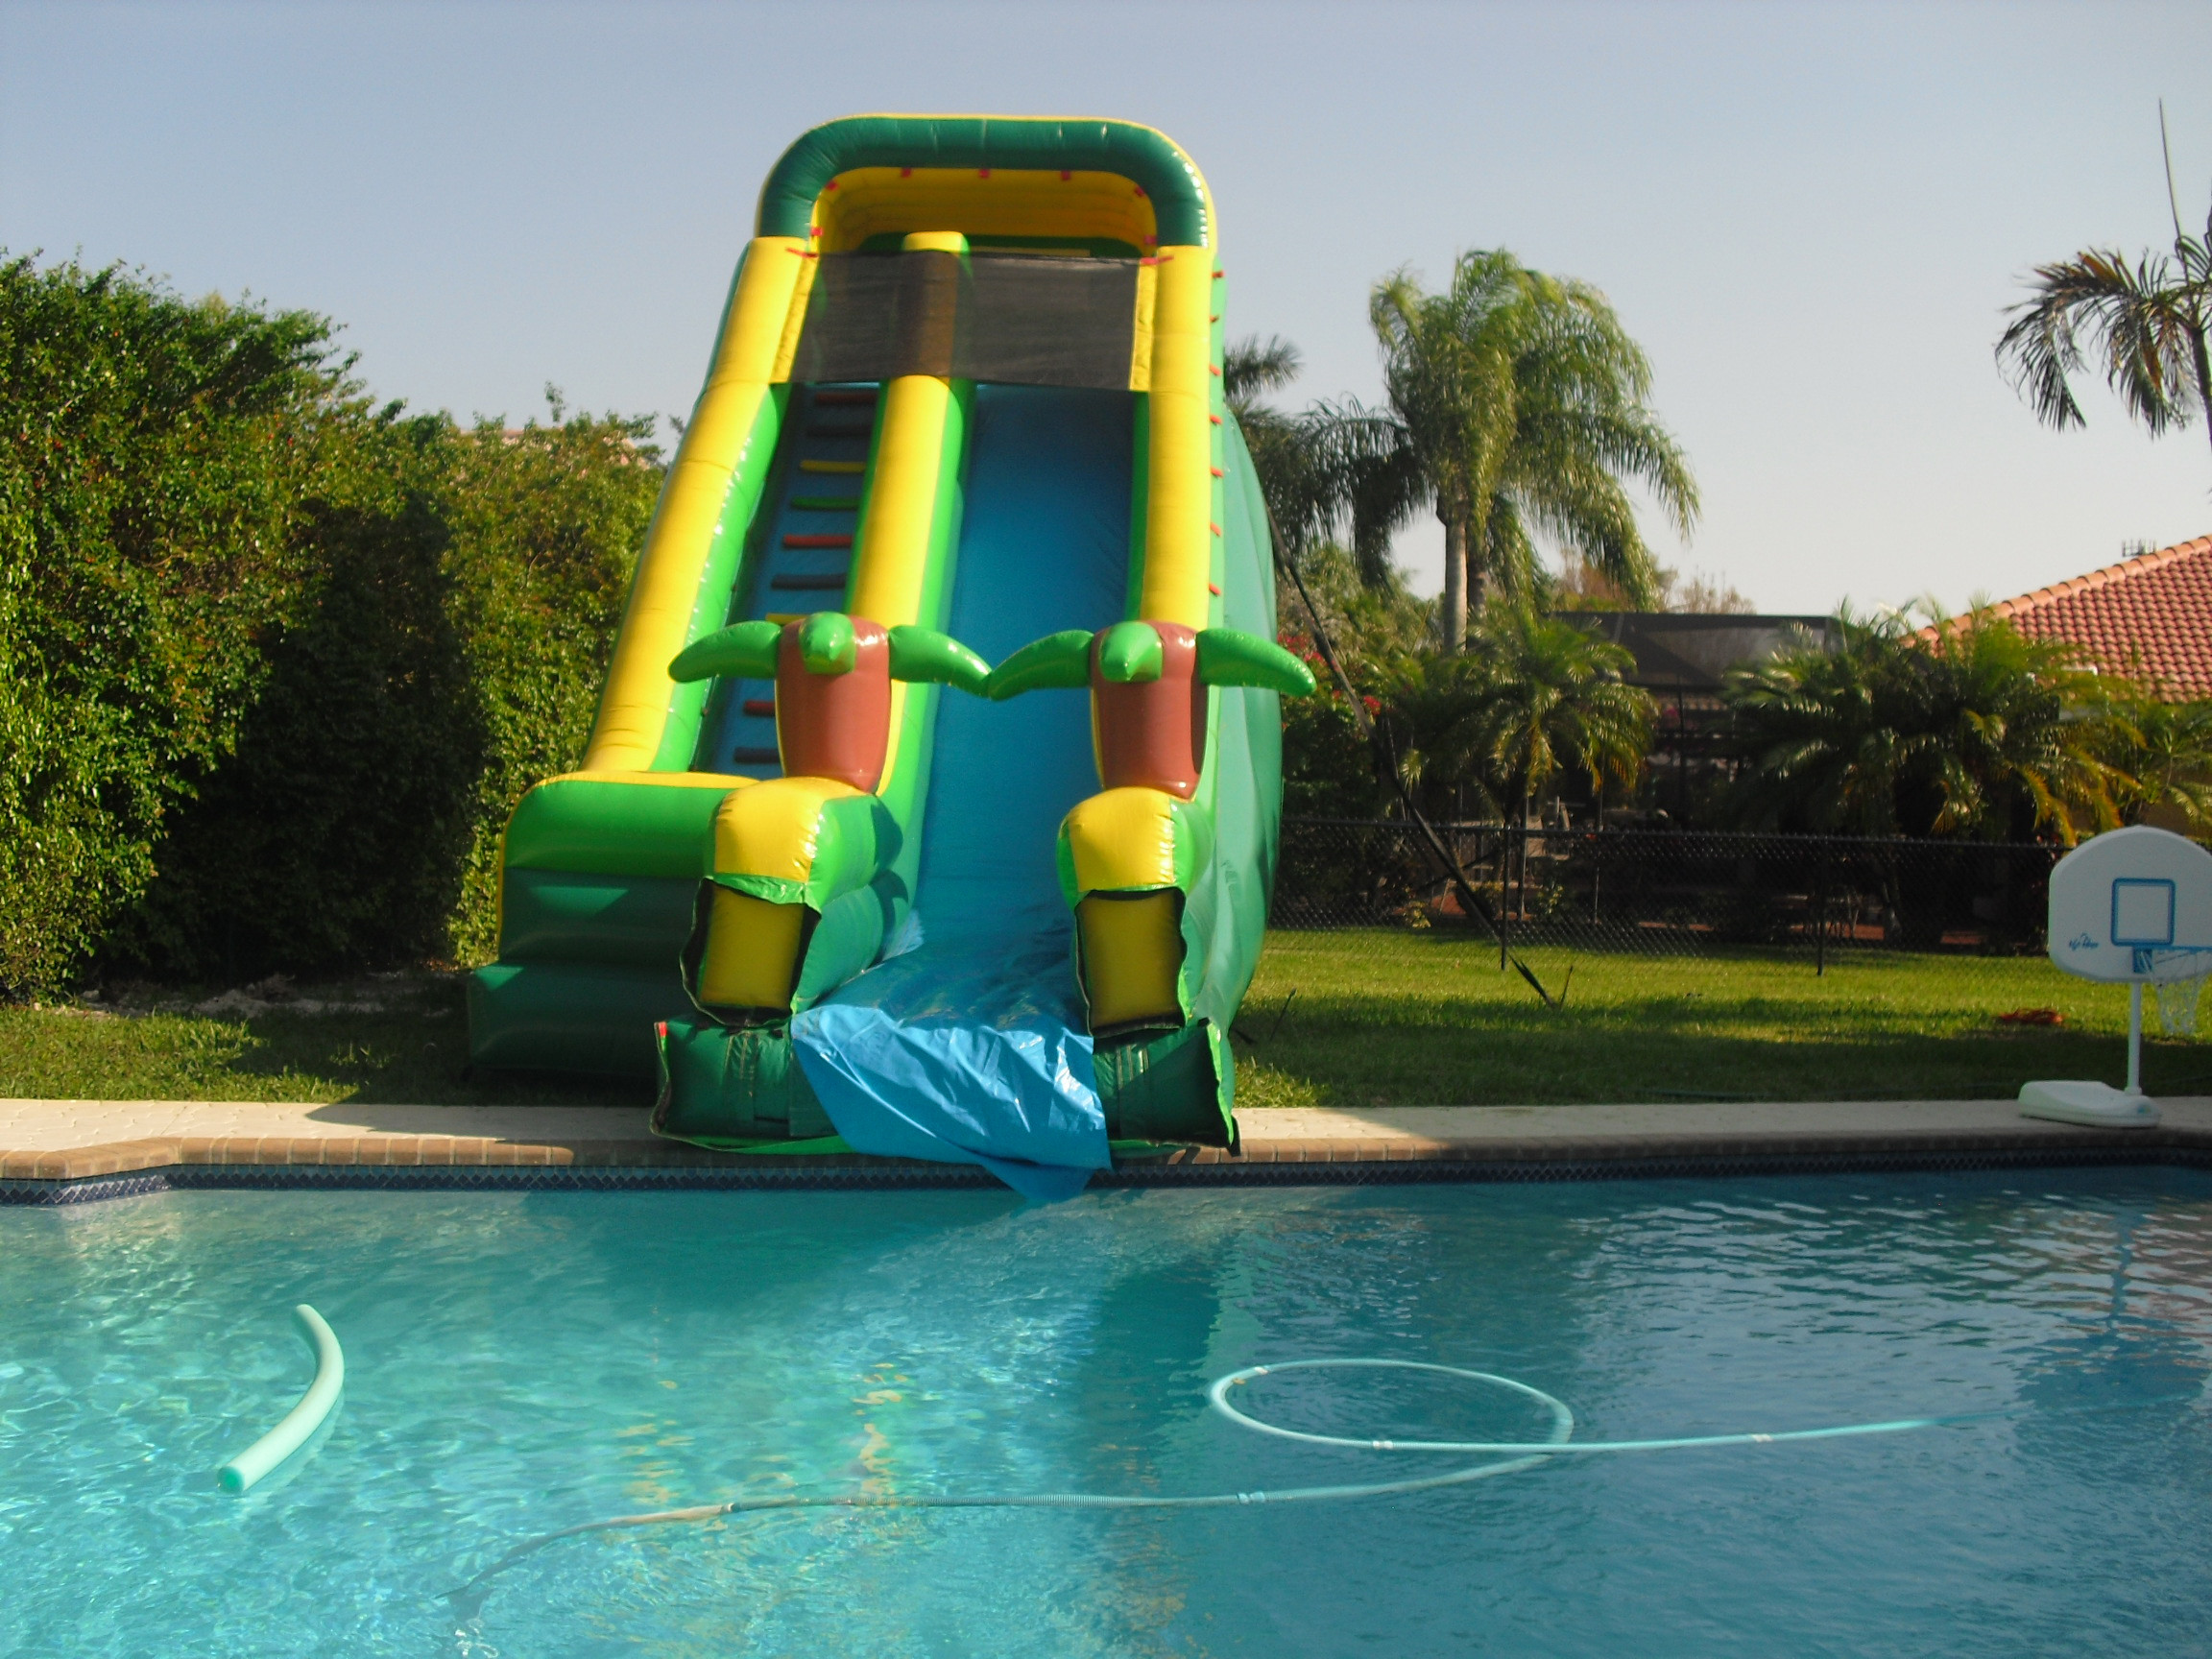 Best ideas about Inflatable Pool Slides For Inground Pools . Save or Pin Newest Inflatable Pool Slide s Now.